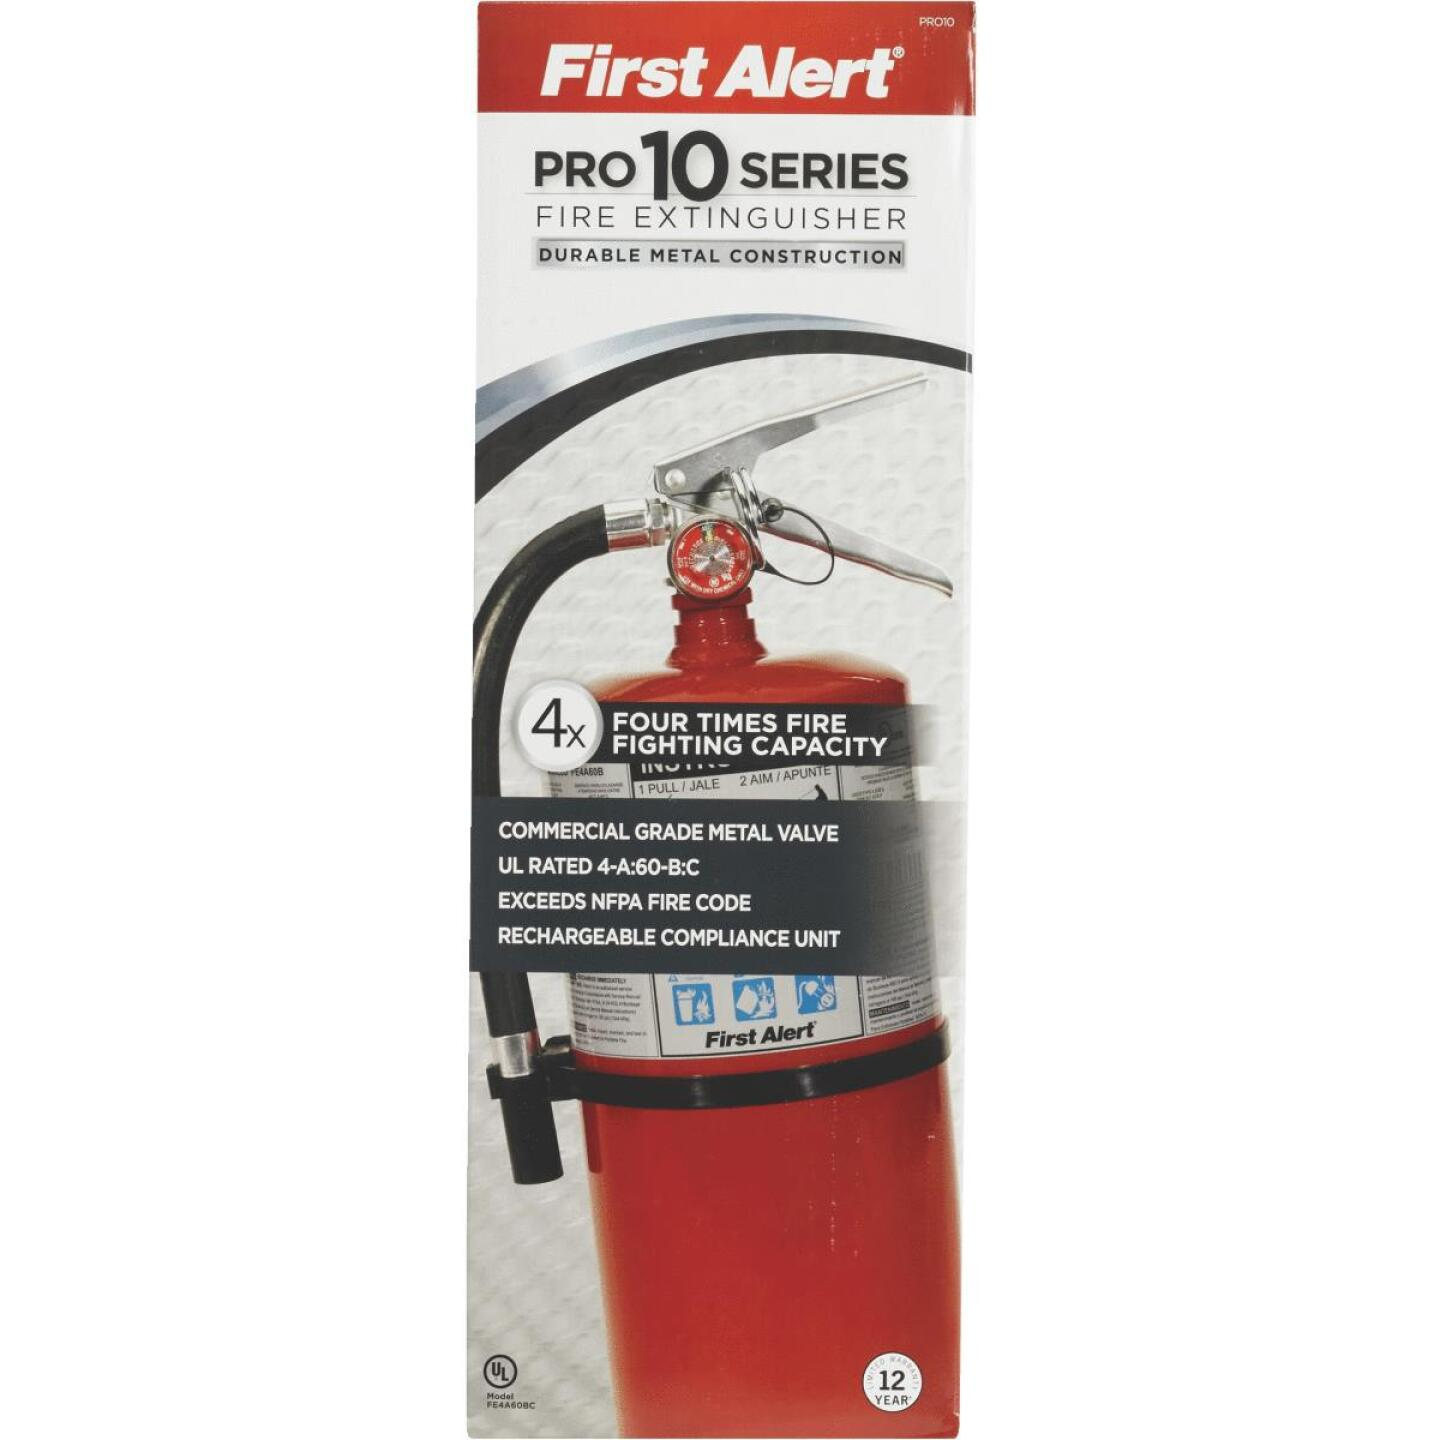 First Alert 4-A:60-B:C Rechargeable Commercial Fire Extinguisher Image 2